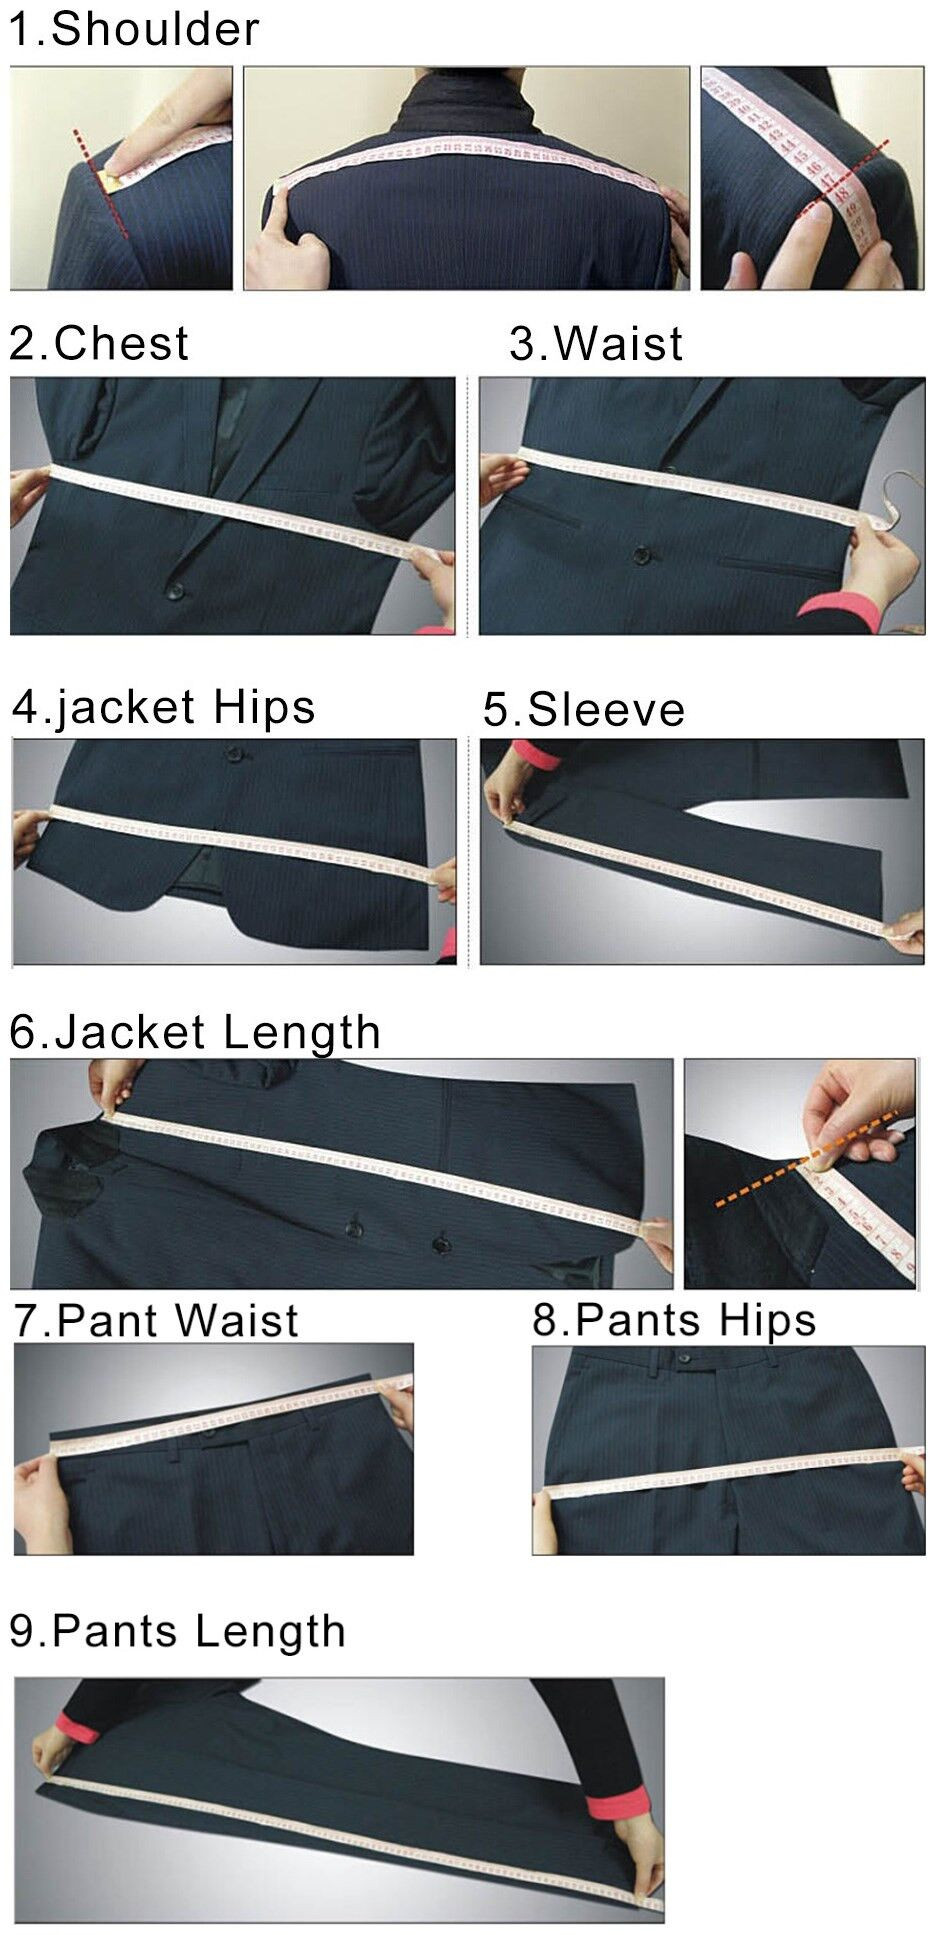 Classy Peach Wedding Mens Suits Slim Fit Bridegroom Tuxedos For Men Two Pieces Groomsmen Suit Formal (Jacket+Pant) 1